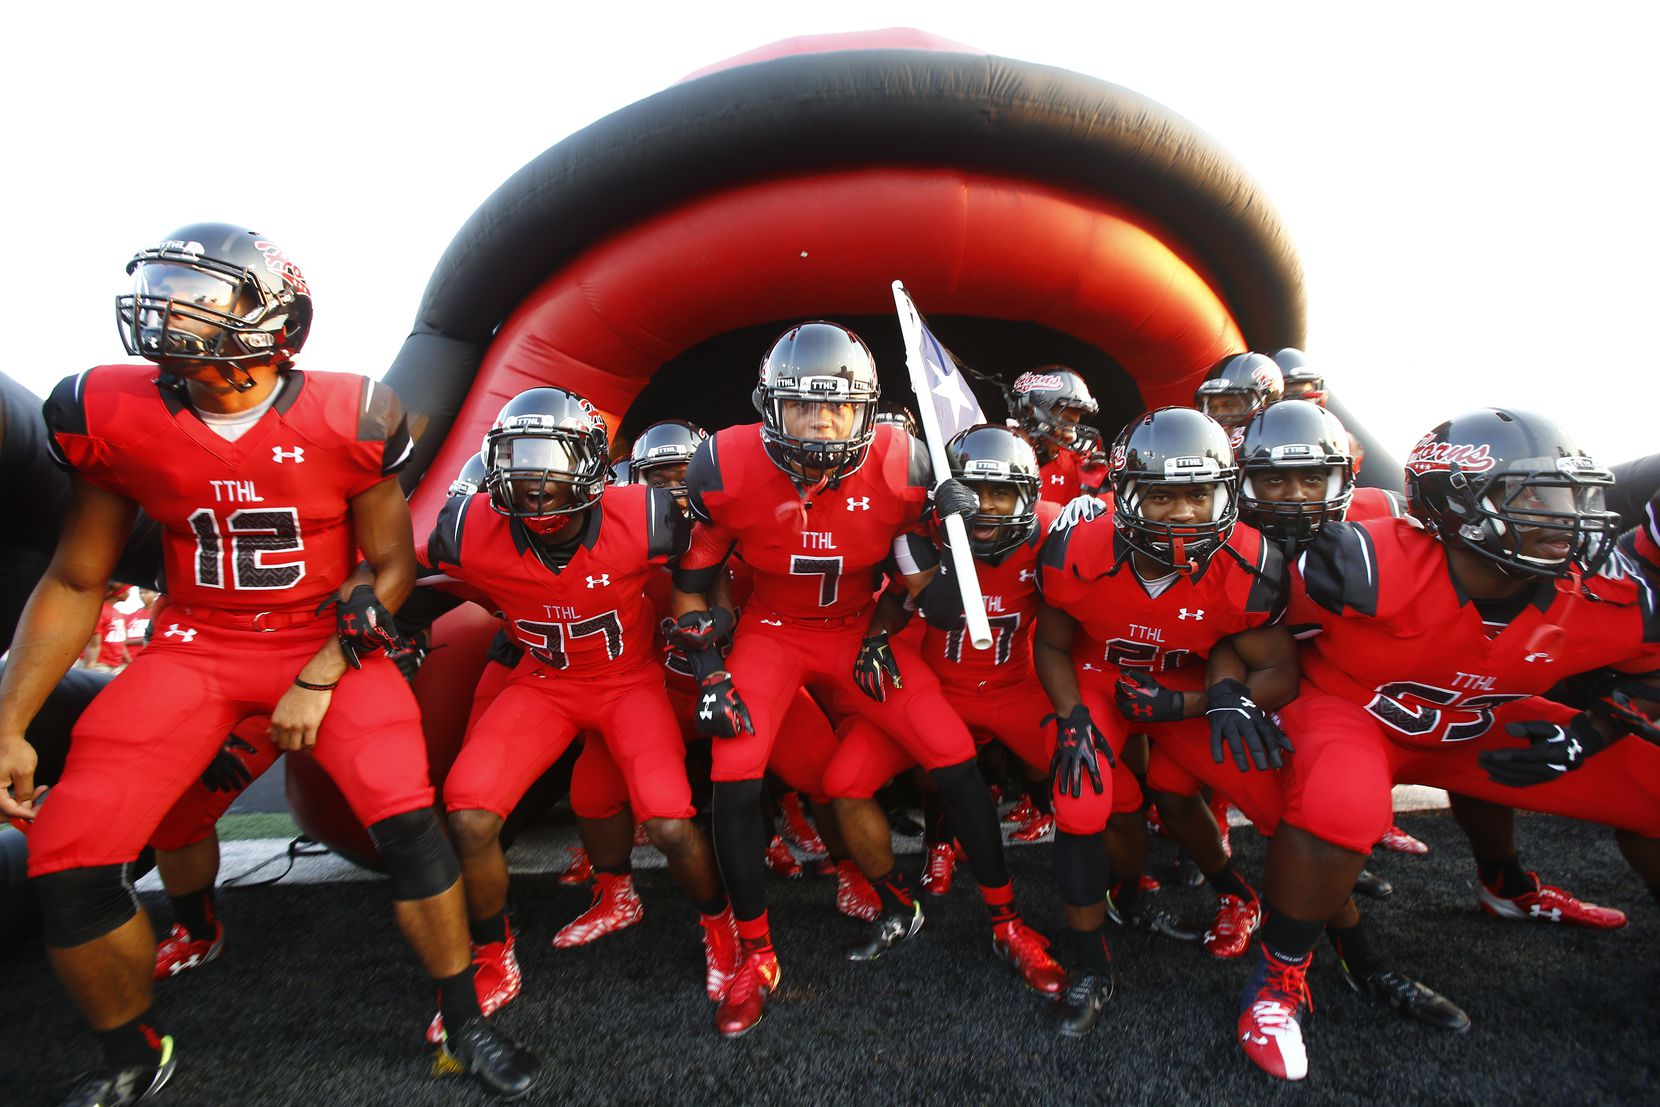 TXHSFB Cedar Hill prepares to take the field for their high school football game against South Oak Cliff in Cedar Hill, Texas, Friday, August 28, 2015. Mike Stone/Special Contributor